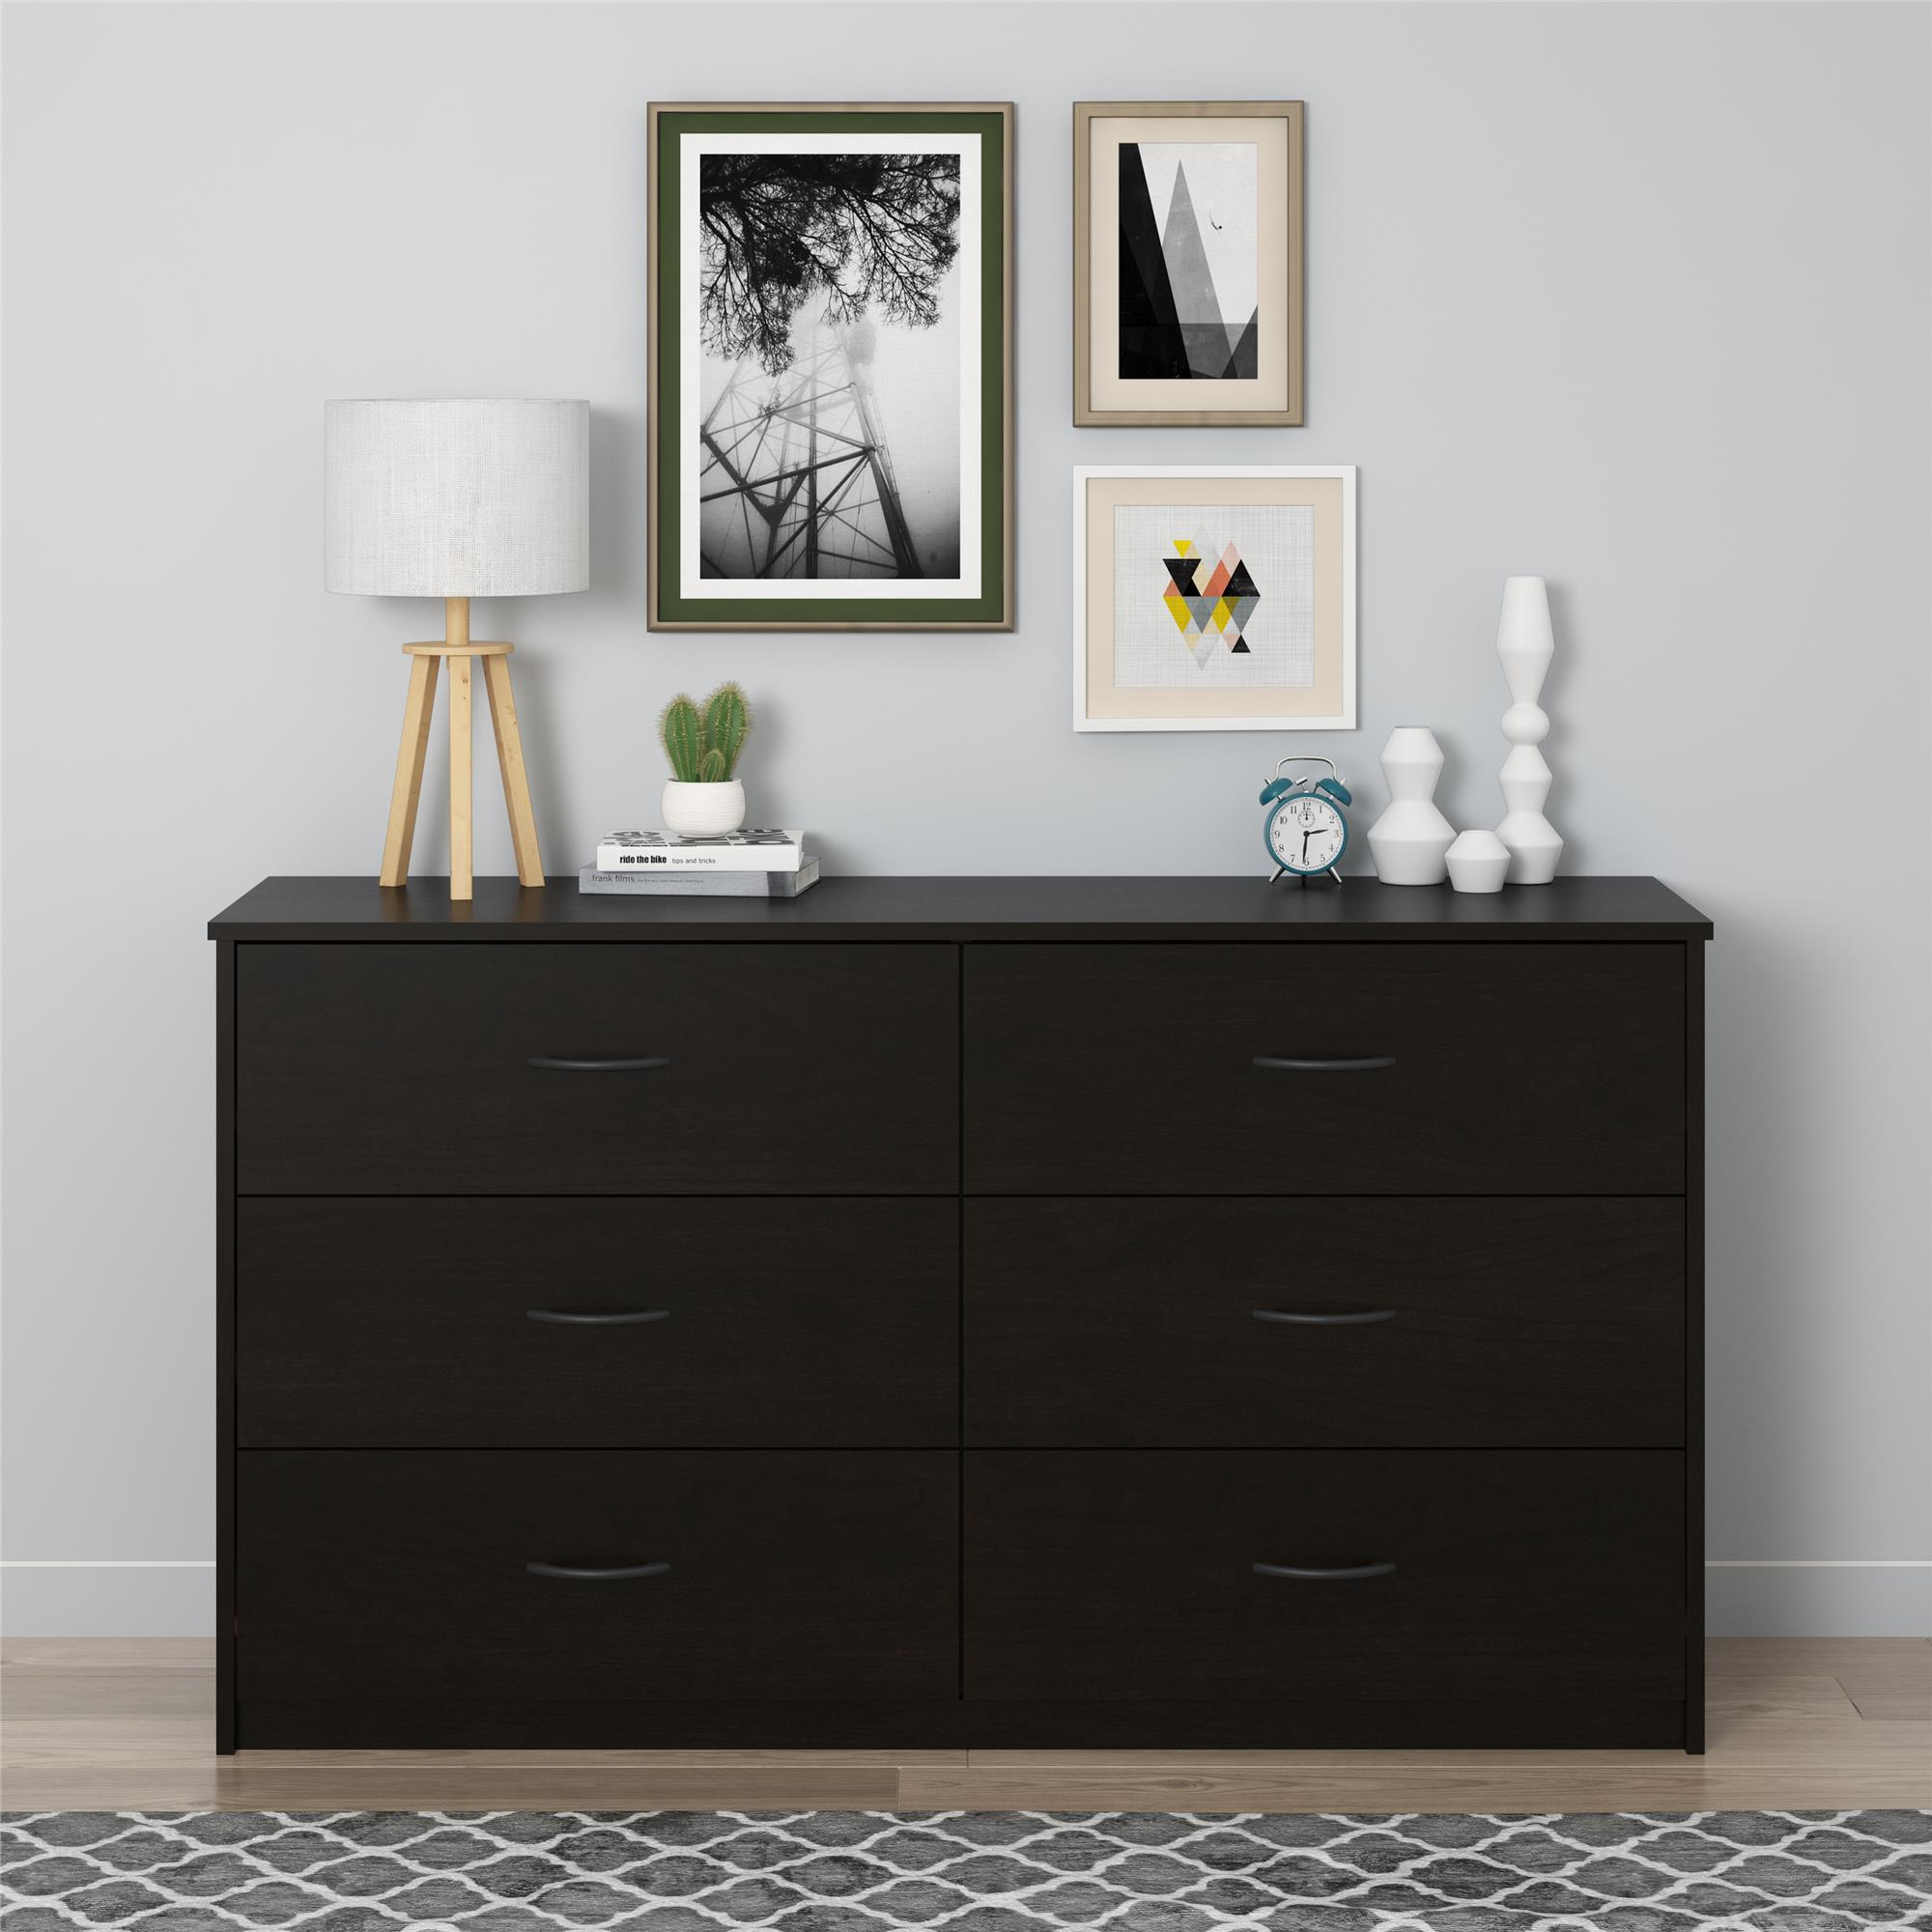 Mainstays 6 Drawer Dresser